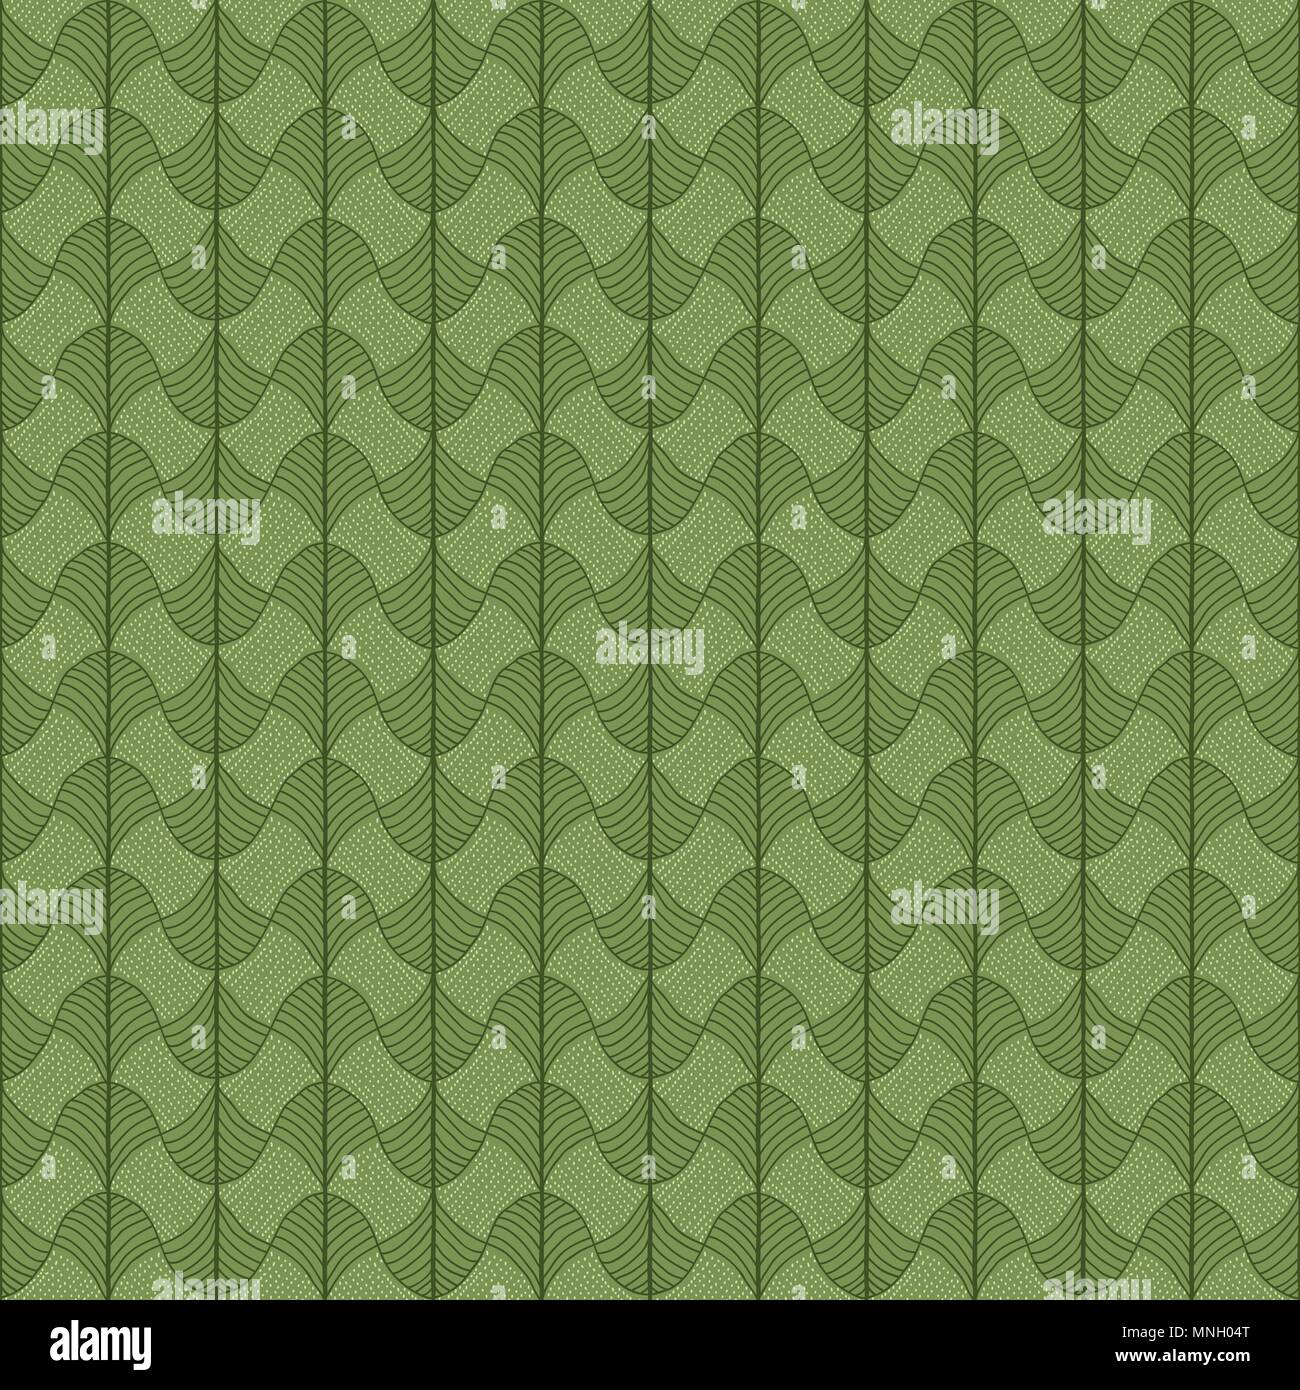 Abstract pattern based on a Traditional African Ornament. Green colors. Seamless vector pattern. Stylized papyrus leaves. Green background for decorat - Stock Image